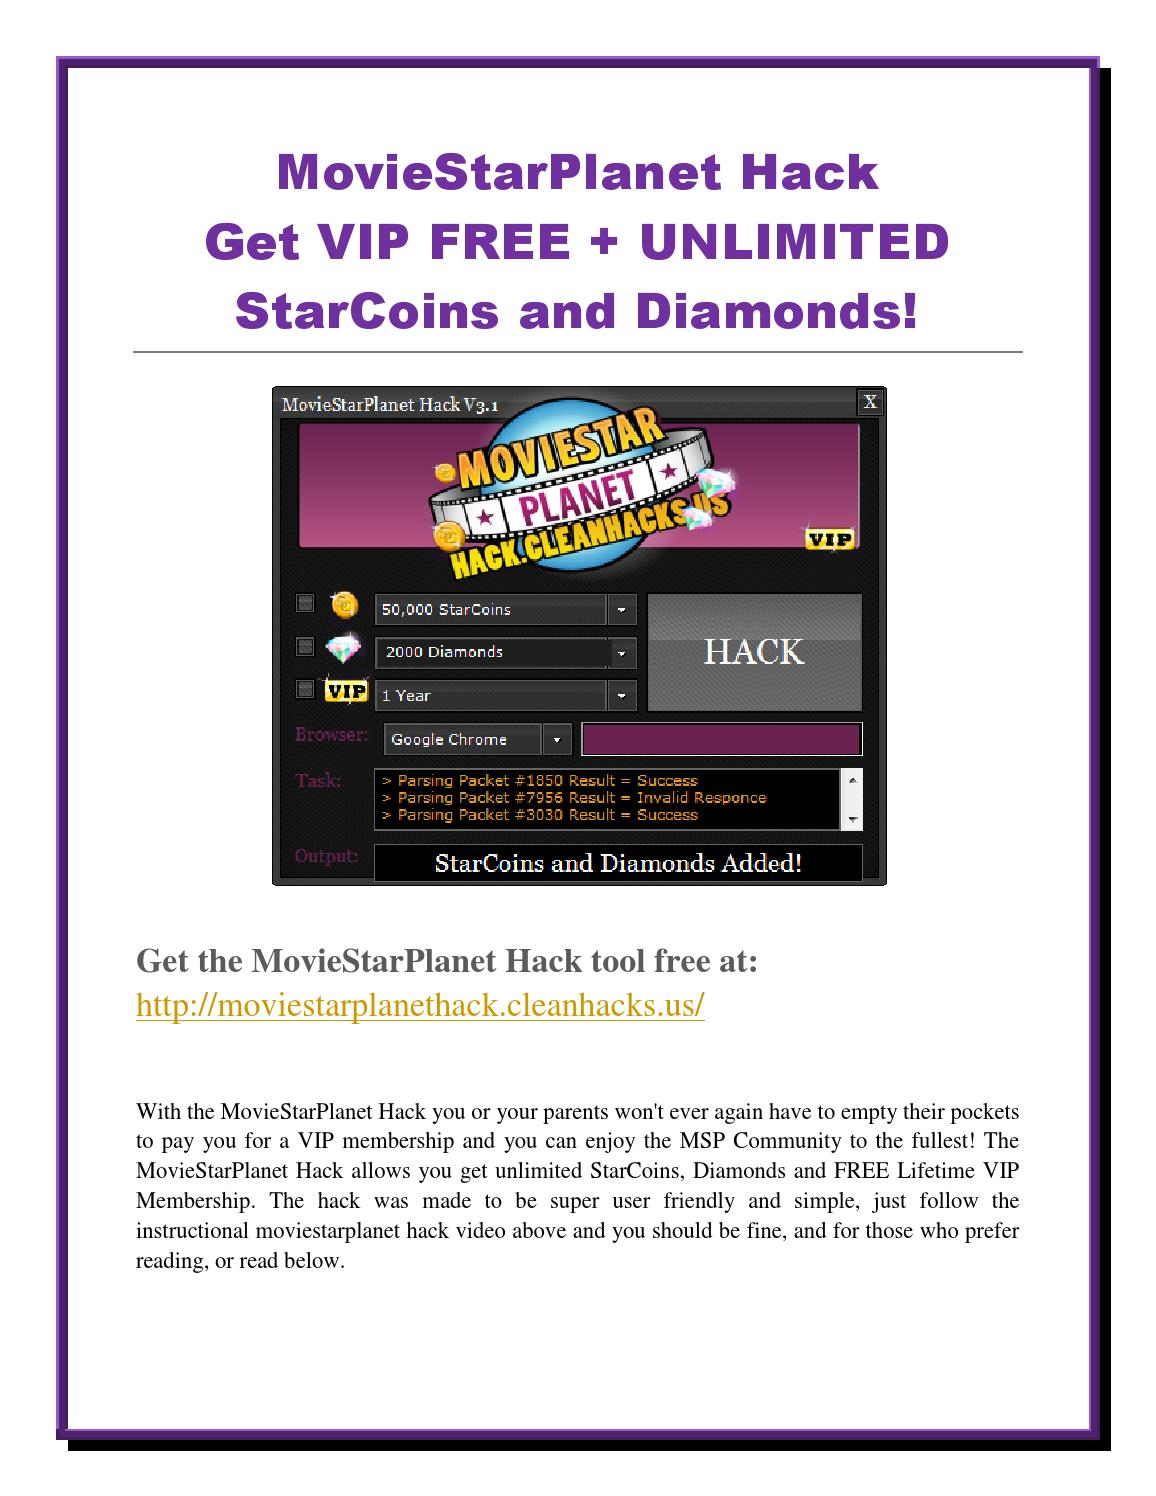 Msp vip diamonds starcoins zodiac / Adex token number verizon